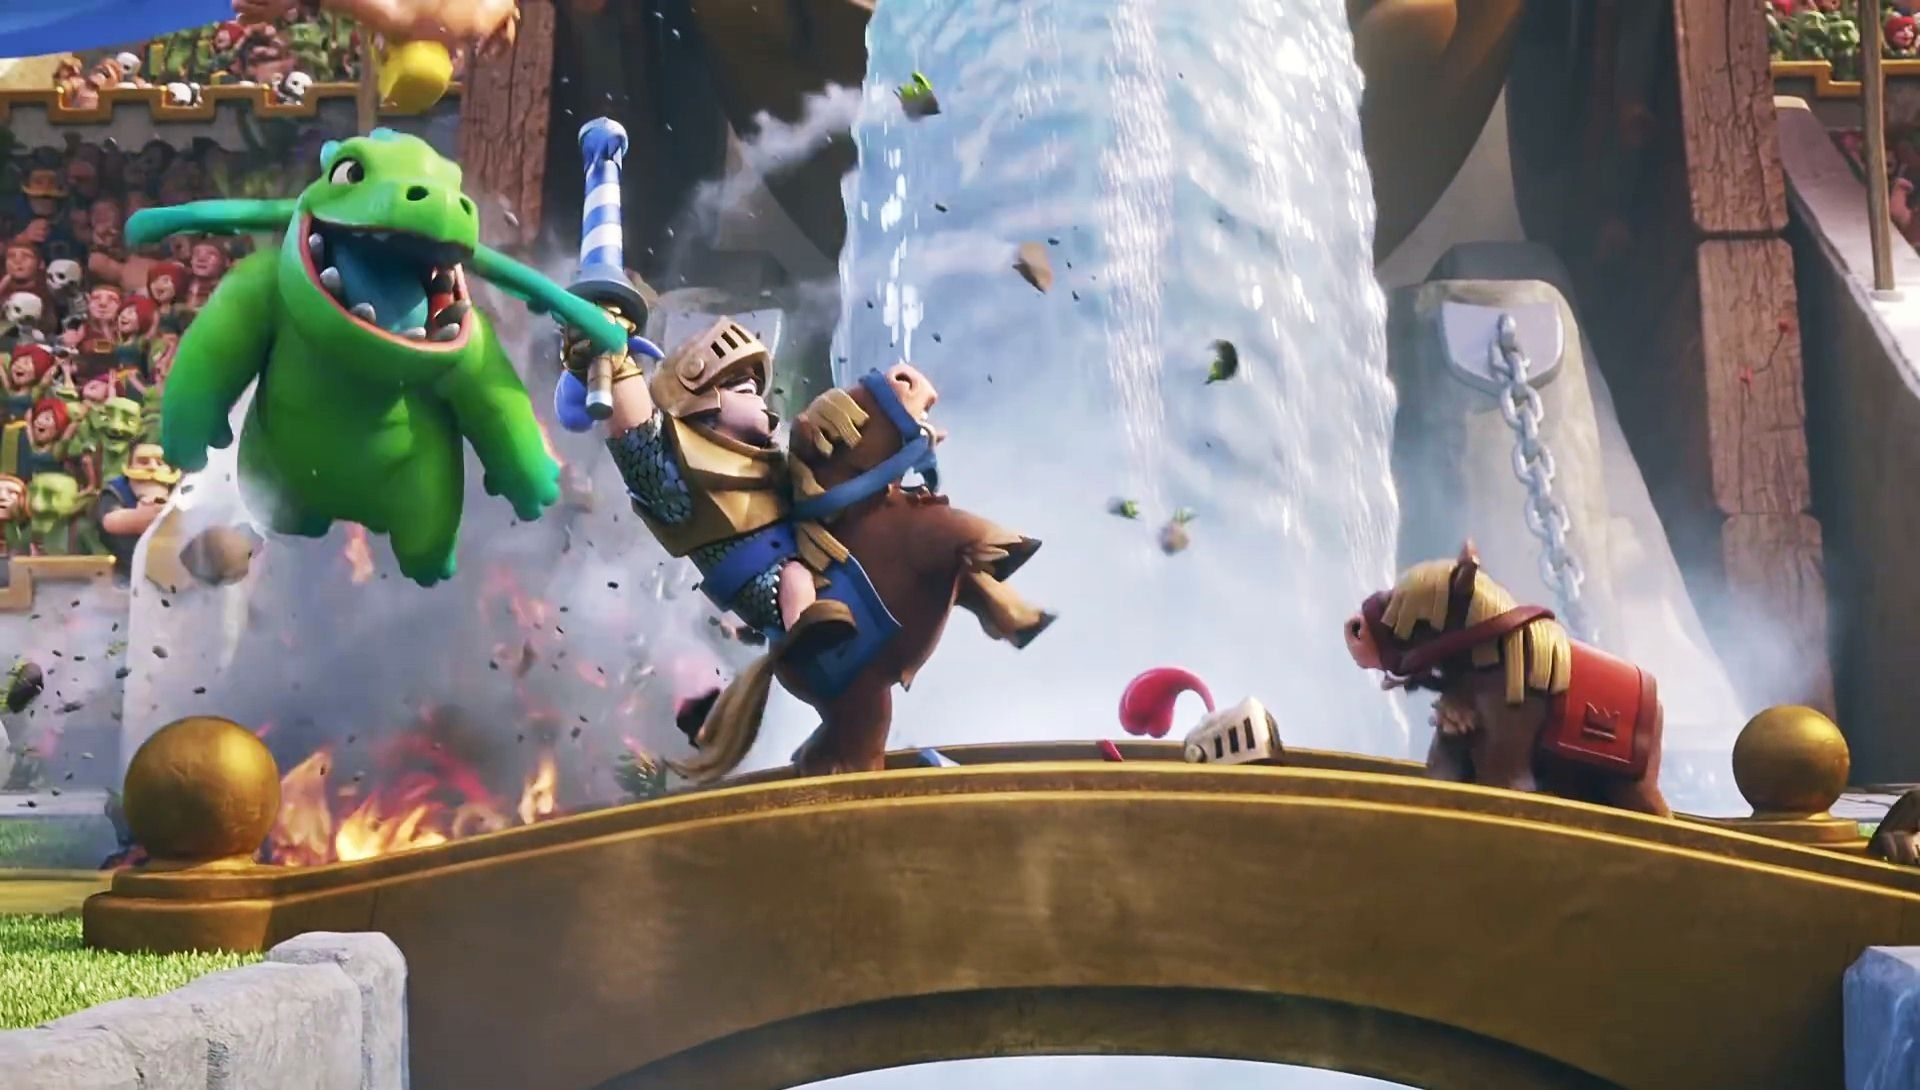 clash royale wallpapers hd backgrounds, images, pics, photos free